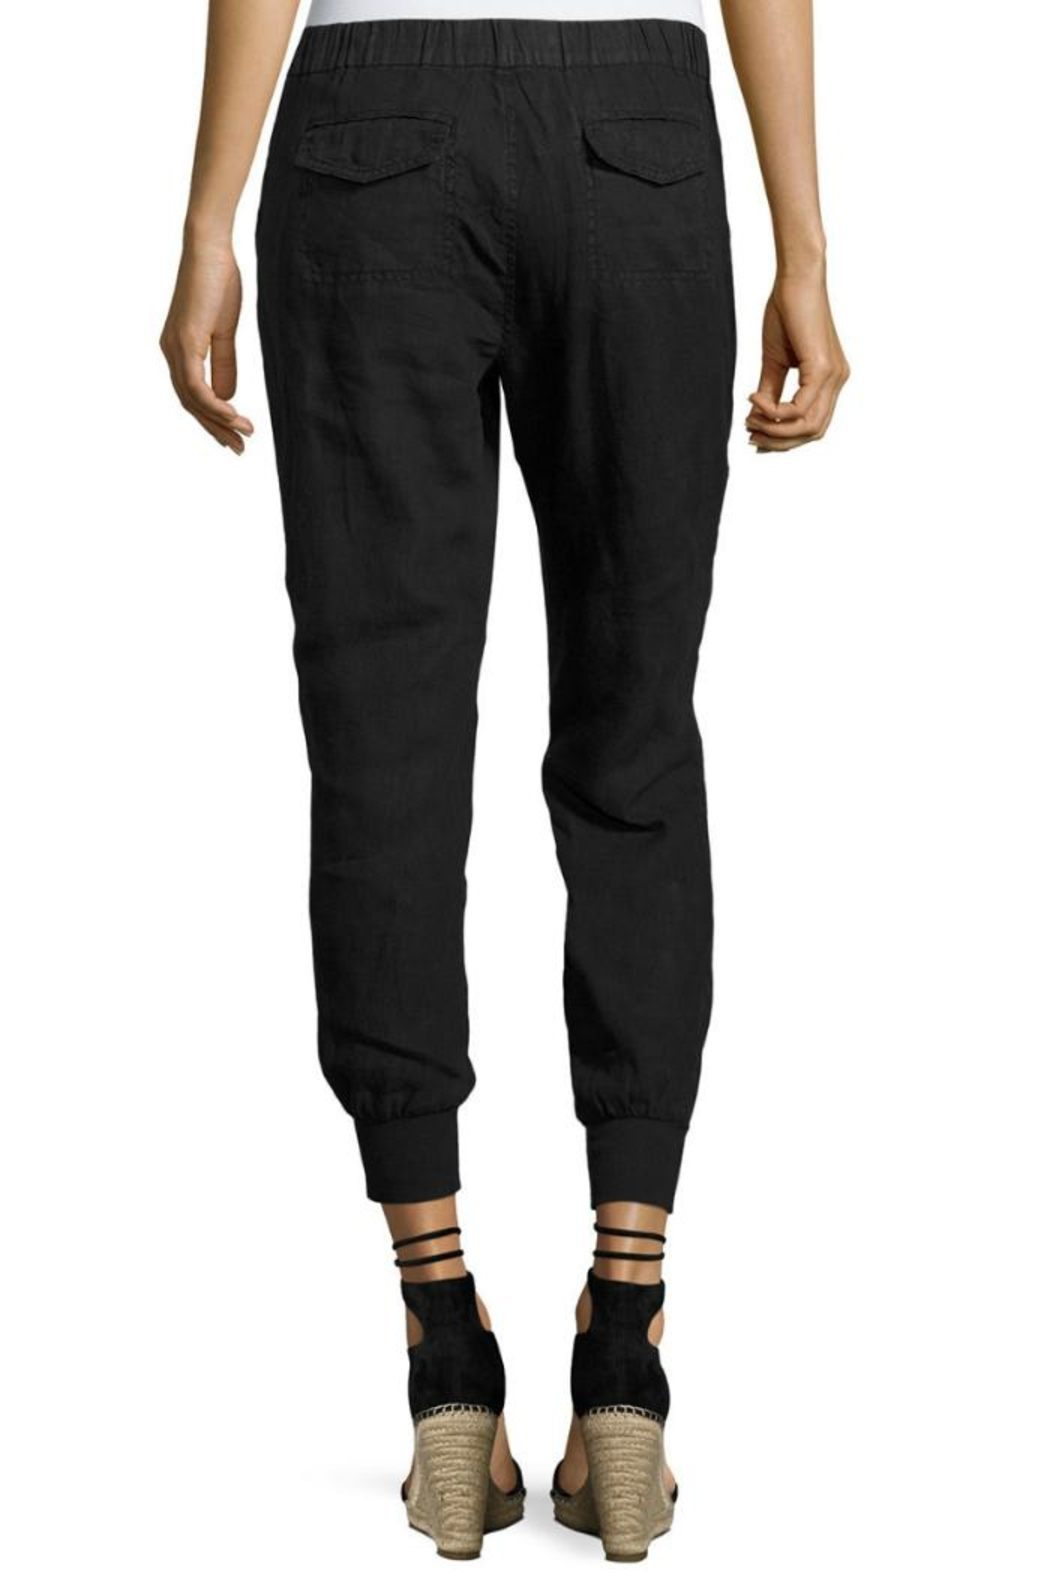 Joie Cynthia Linen Pant - Front Full Image